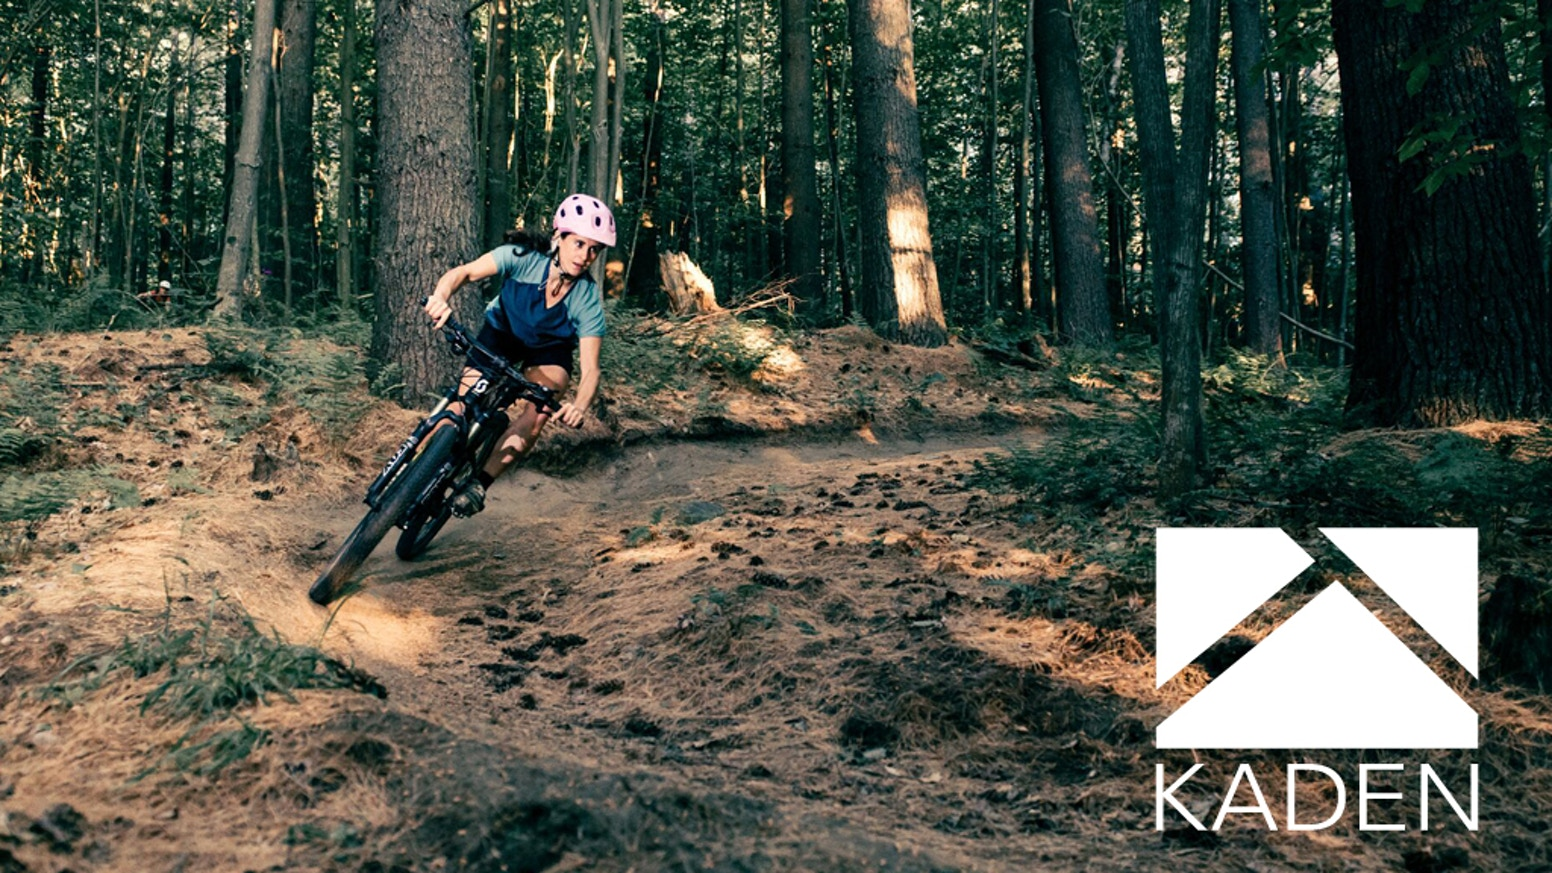 Mountain Bike Clothing For Women From Kaden Apparel By Chelsea